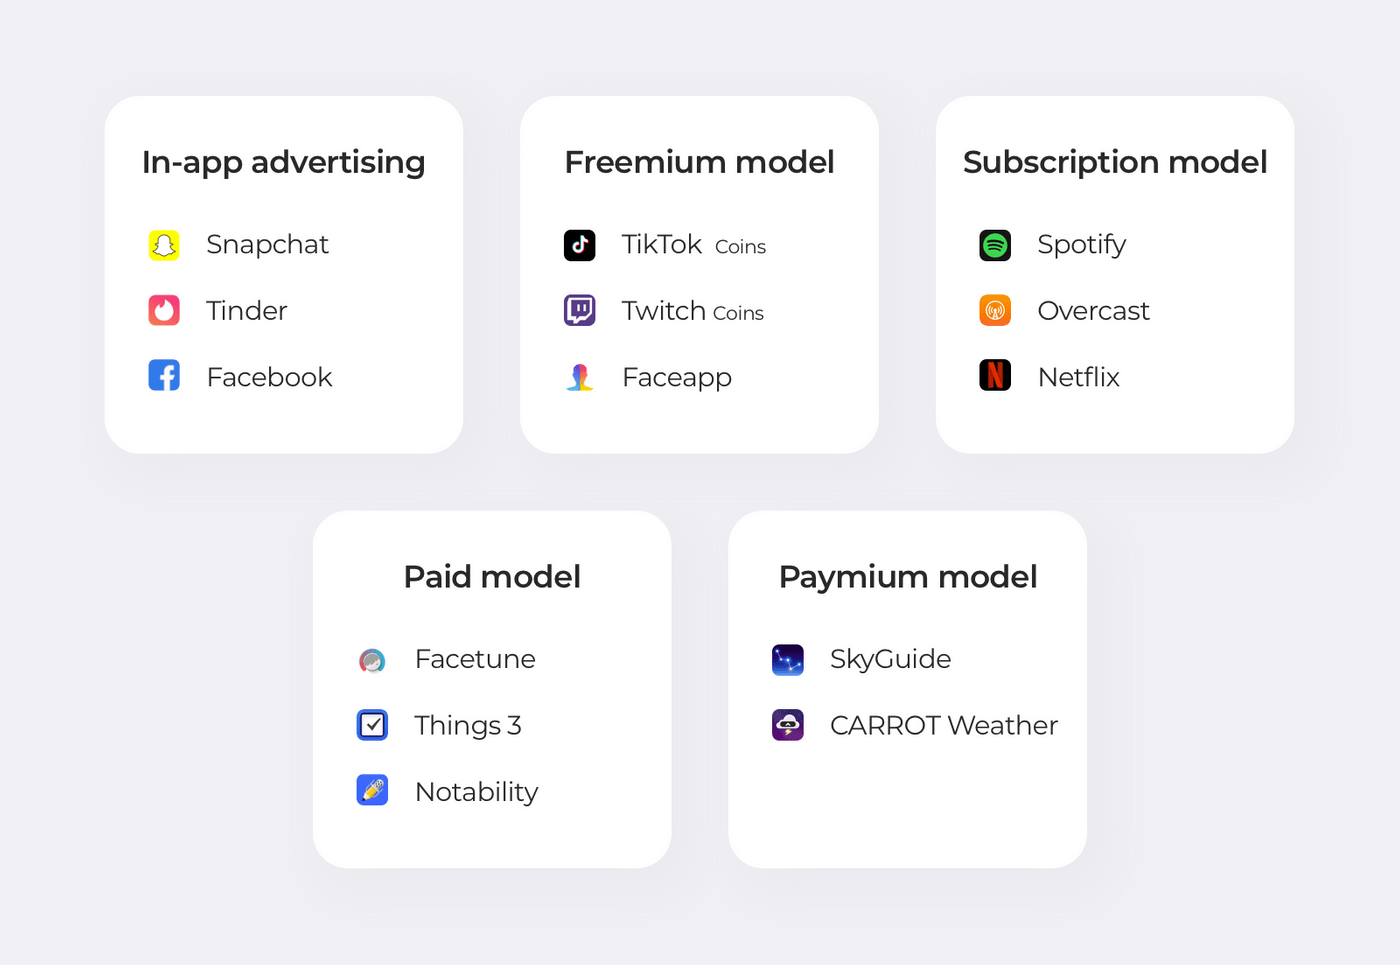 Popular apps and their monetization models